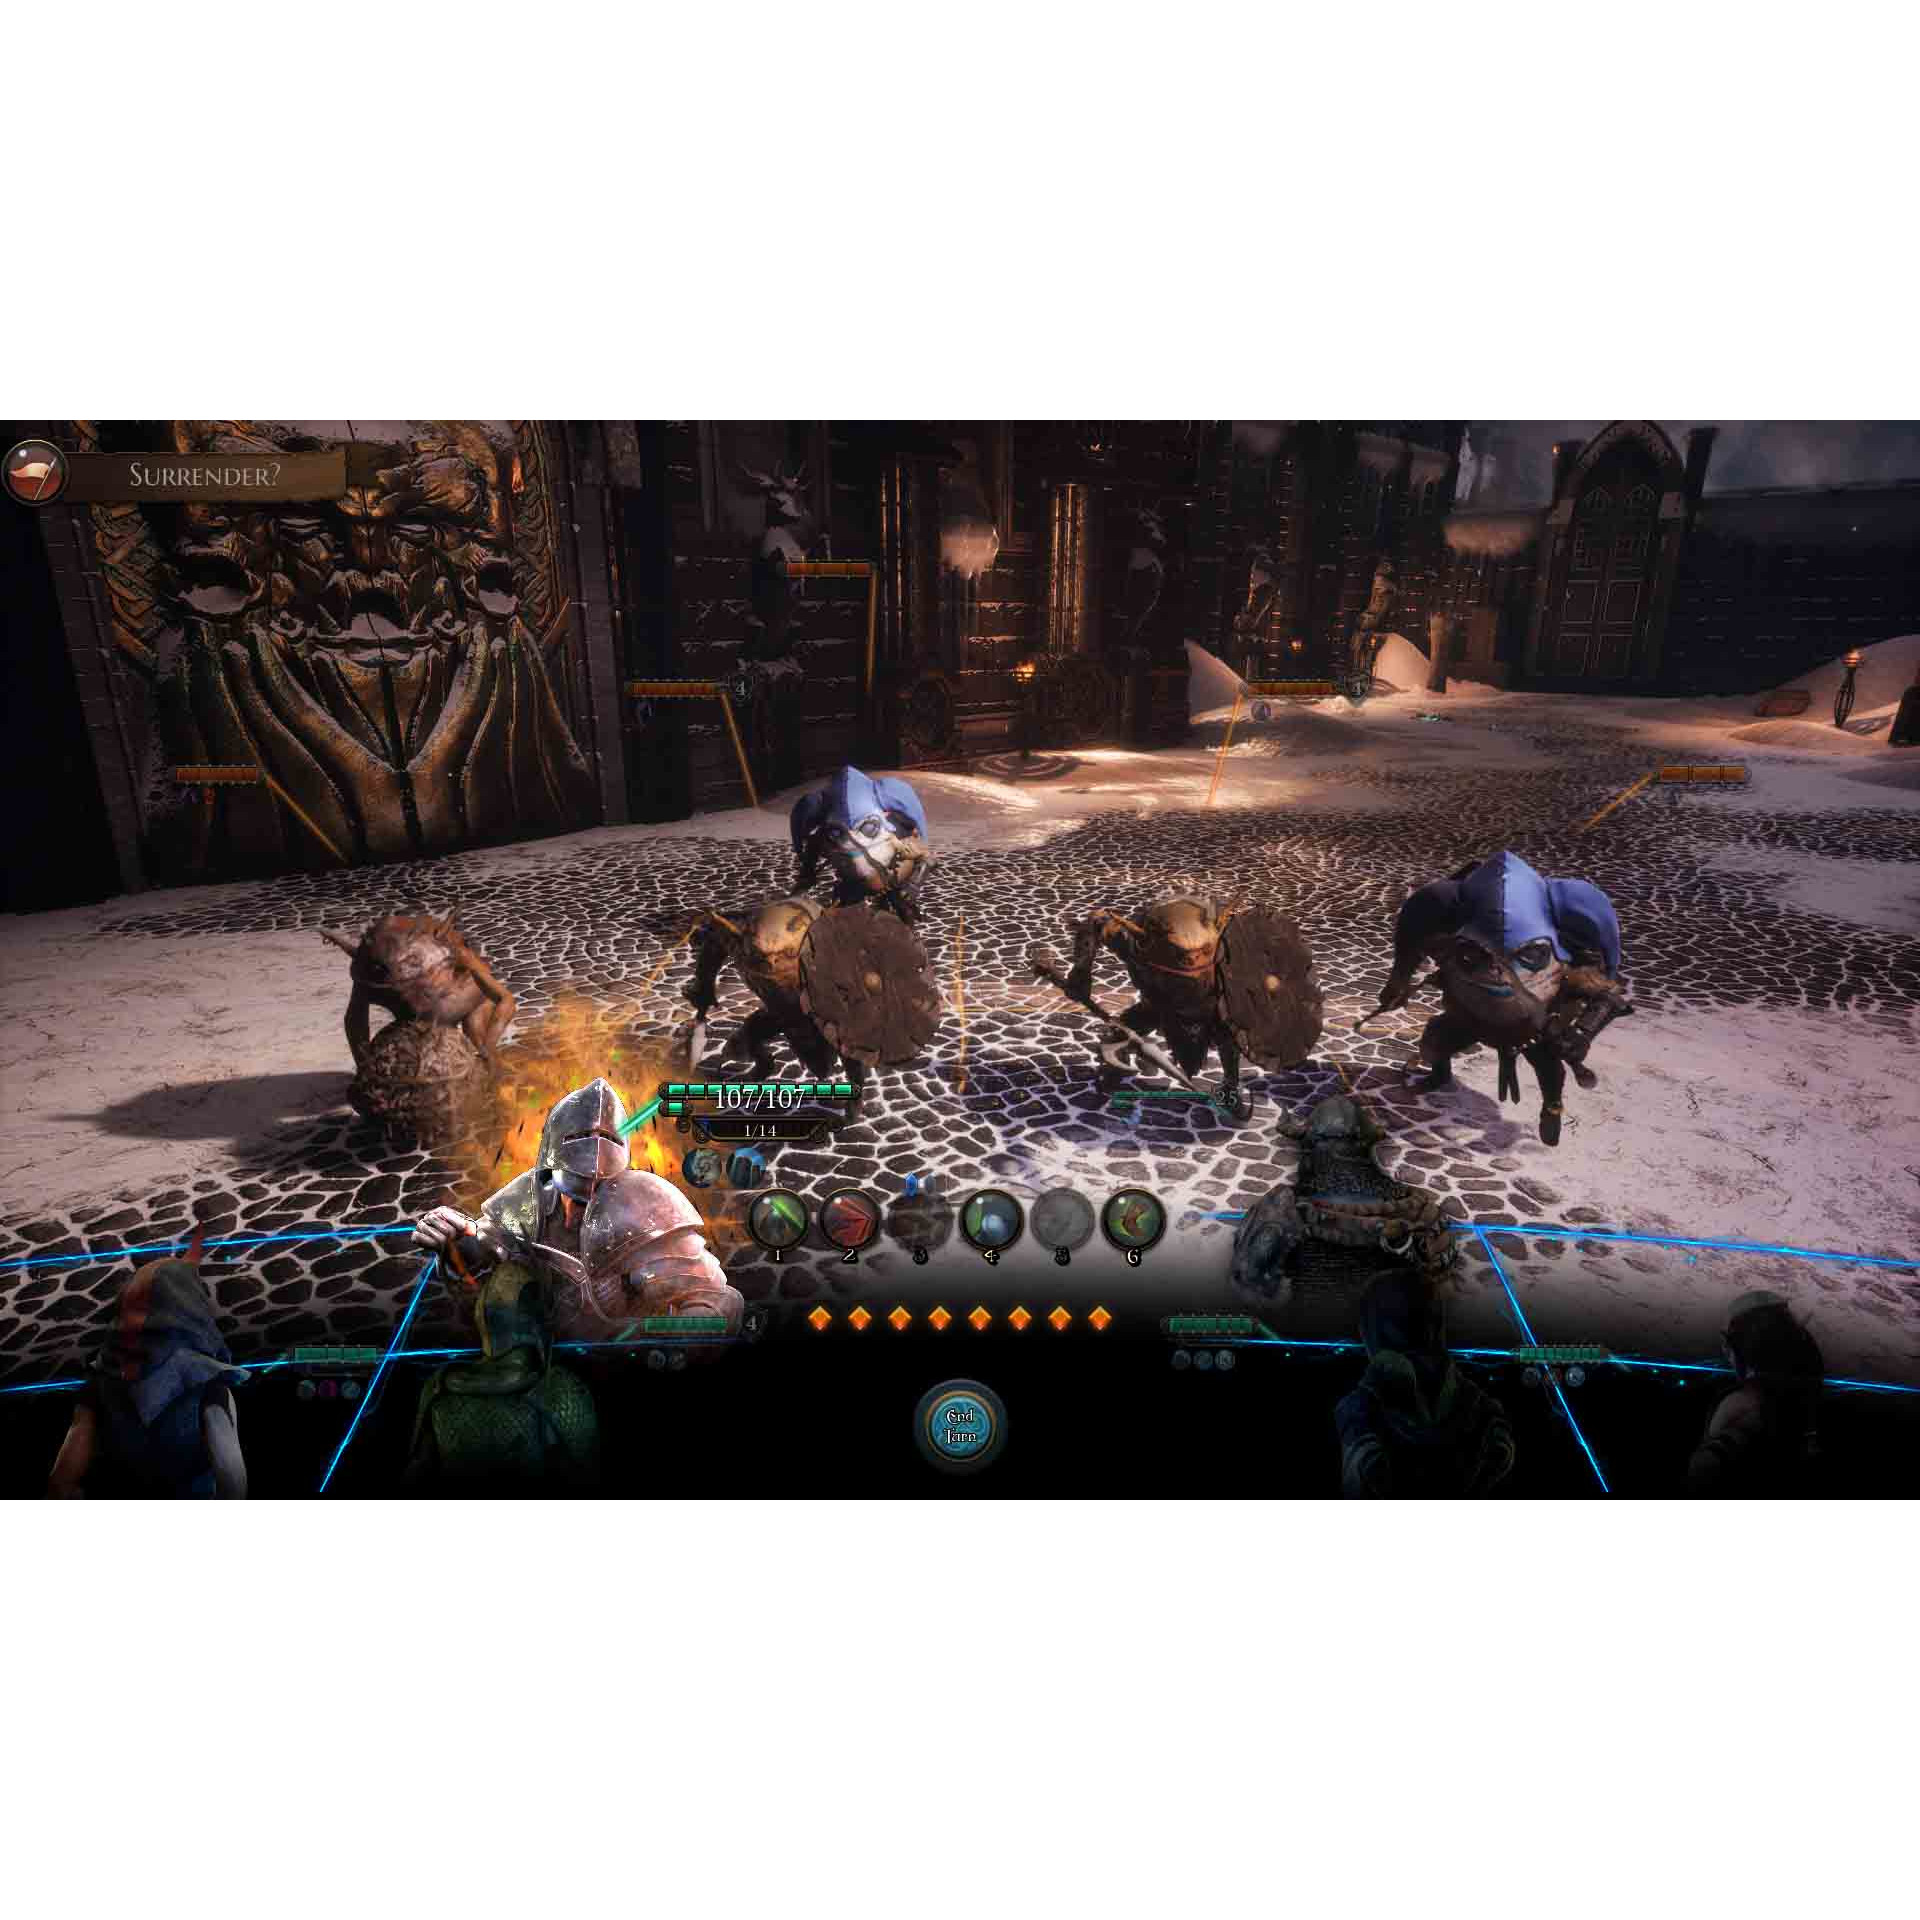 Joc The Bard's Tale IV: Directors Cut Day One Edition (EU) Pentru PlayStation 4 5